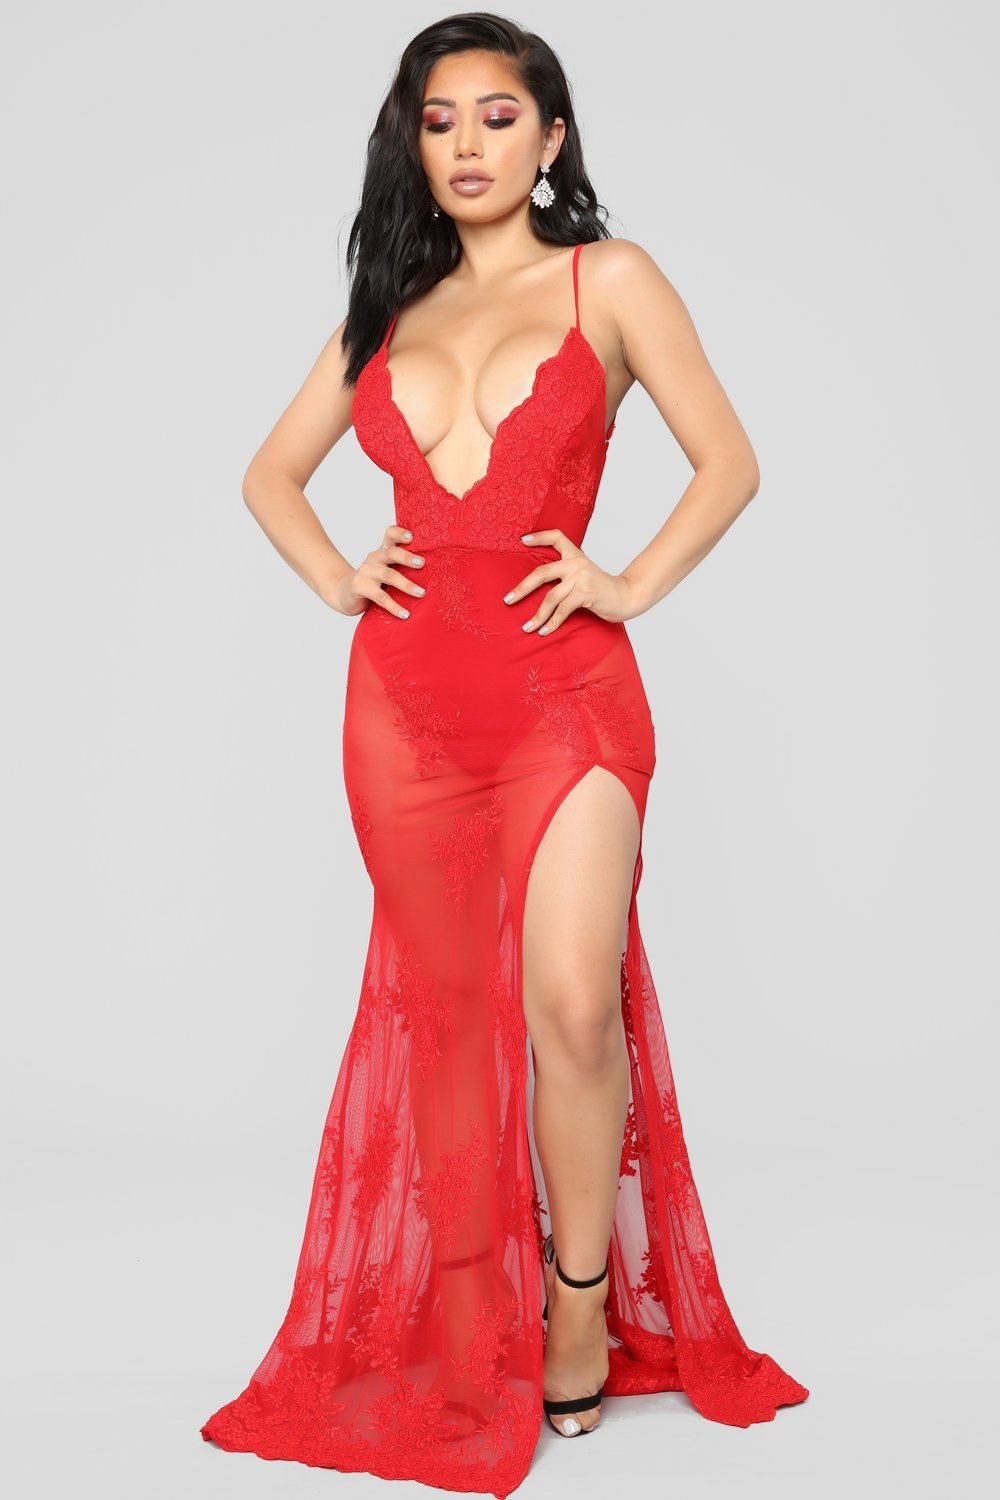 After The Sun Goes Down Dress Red in classy baddies